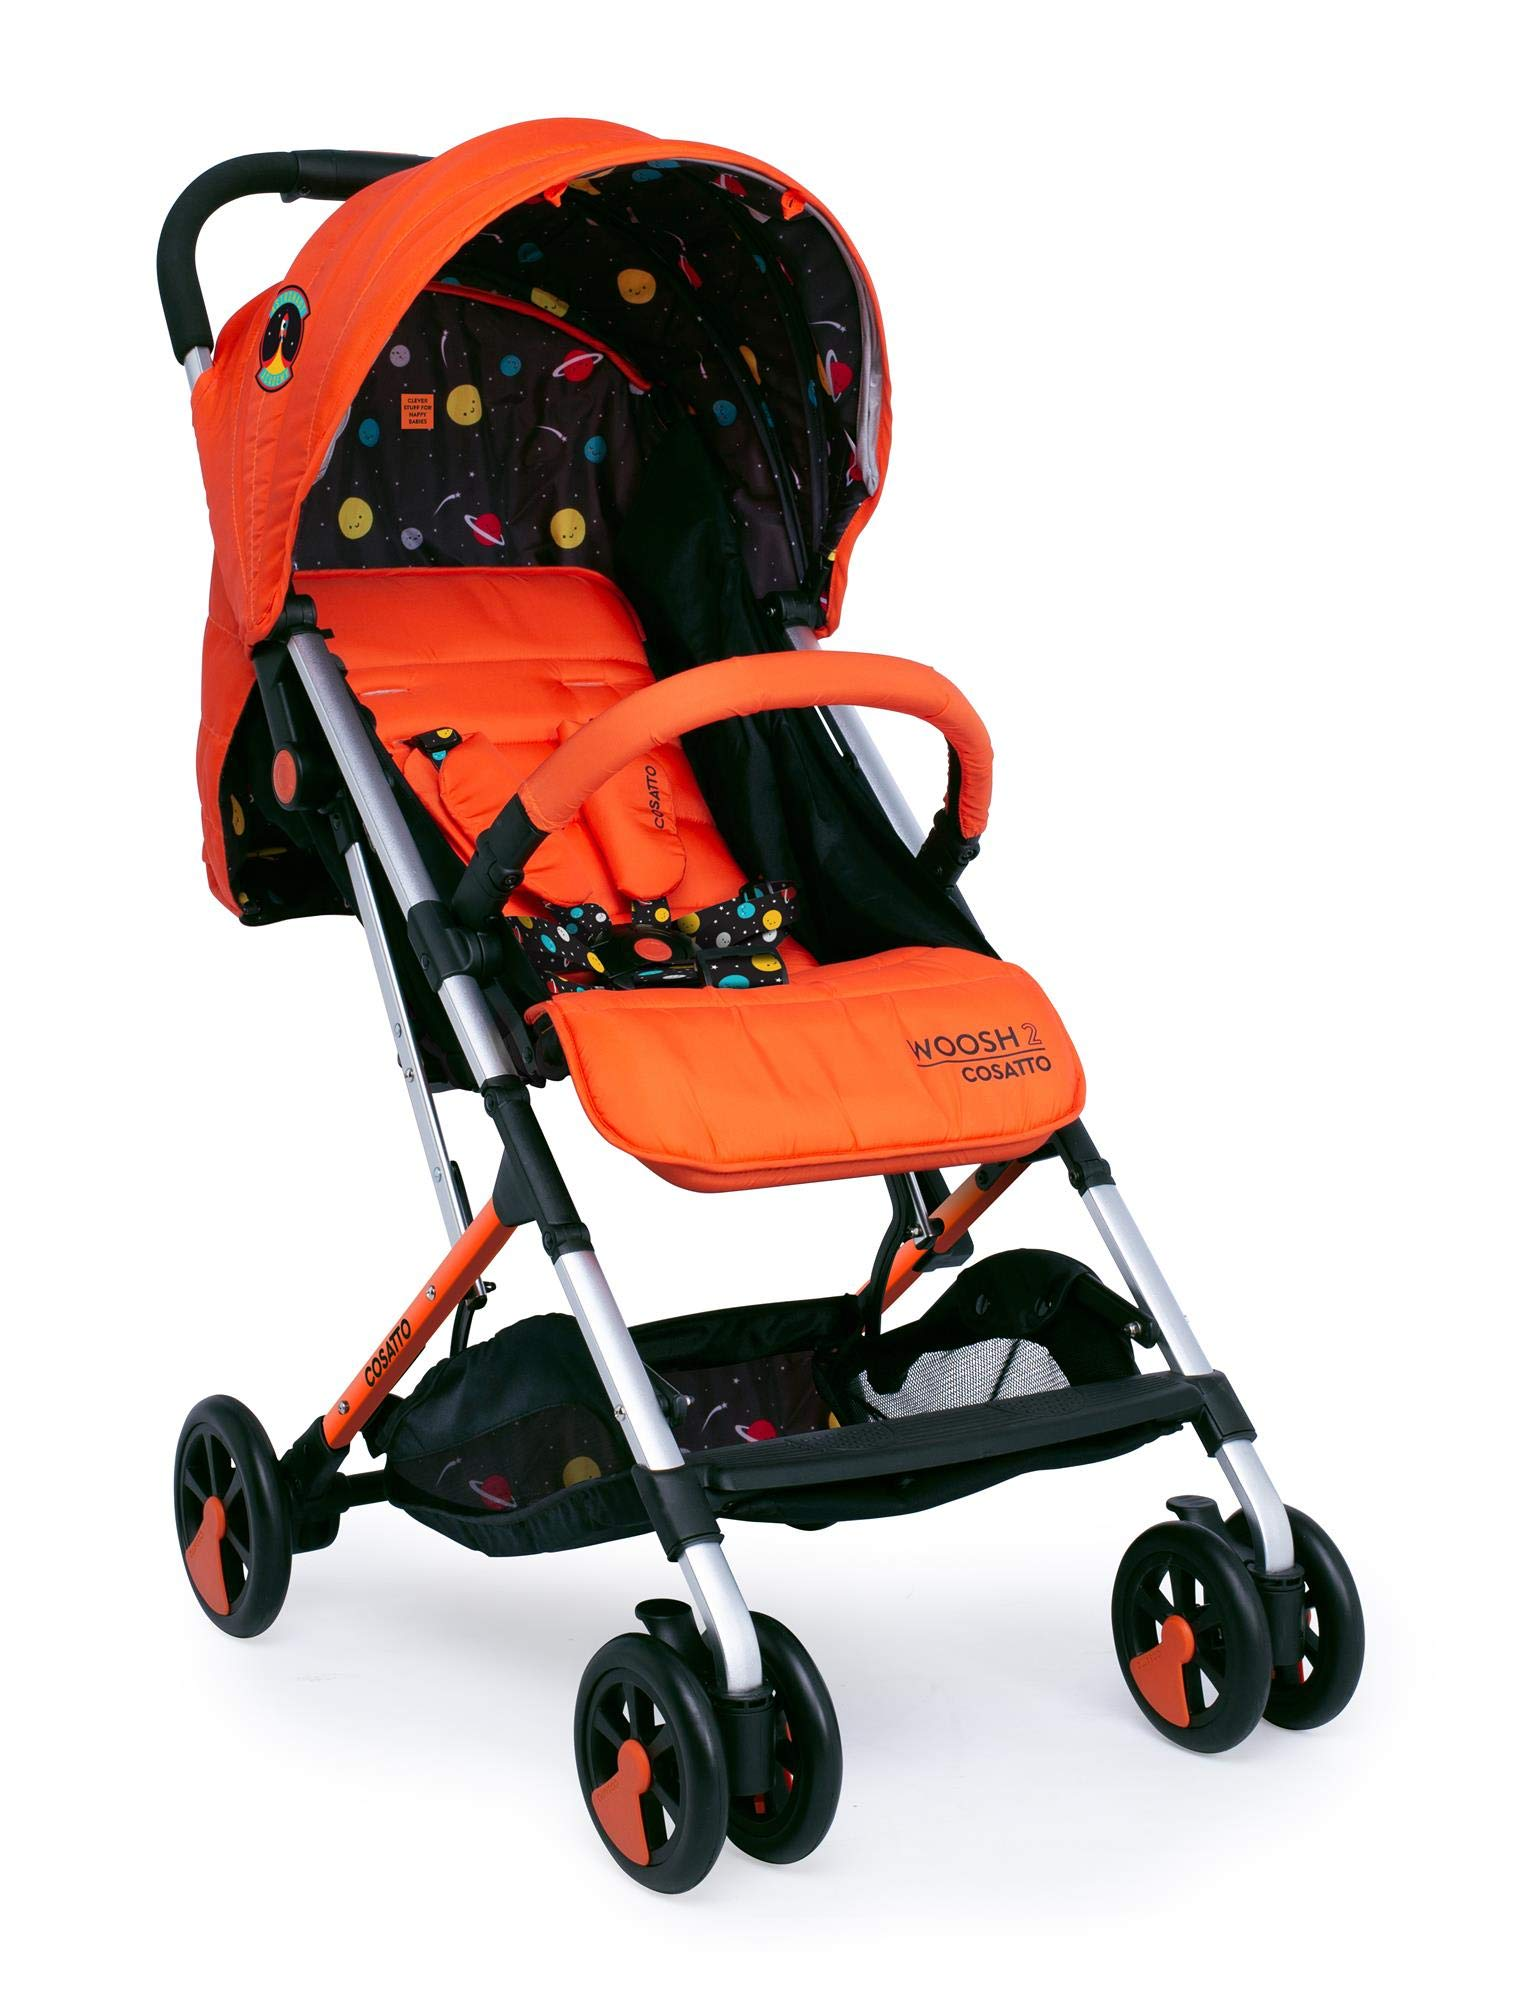 Cosatto Woosh 2 Stroller Spaceman with raincover and Bumper bar Birth to 25kg Cosatto INCLUDES: The pushchair itself, Raincover, Bumper bar,4 year guarantee(UK and Ireland only) Suitable from birth to max weight of 25kg. Lets your toddler use it for even longer. Lightweight, sturdy aluminium frame. Newborn recline. Lightweight waterproof Ripstop fabric on seat. Lockable swivel front wheels for quick manoeuvres Roomy seat for extra comfort. Removable bumper bar for extra support. Magic bell. Front & rear suspension for a smooth ride. 3